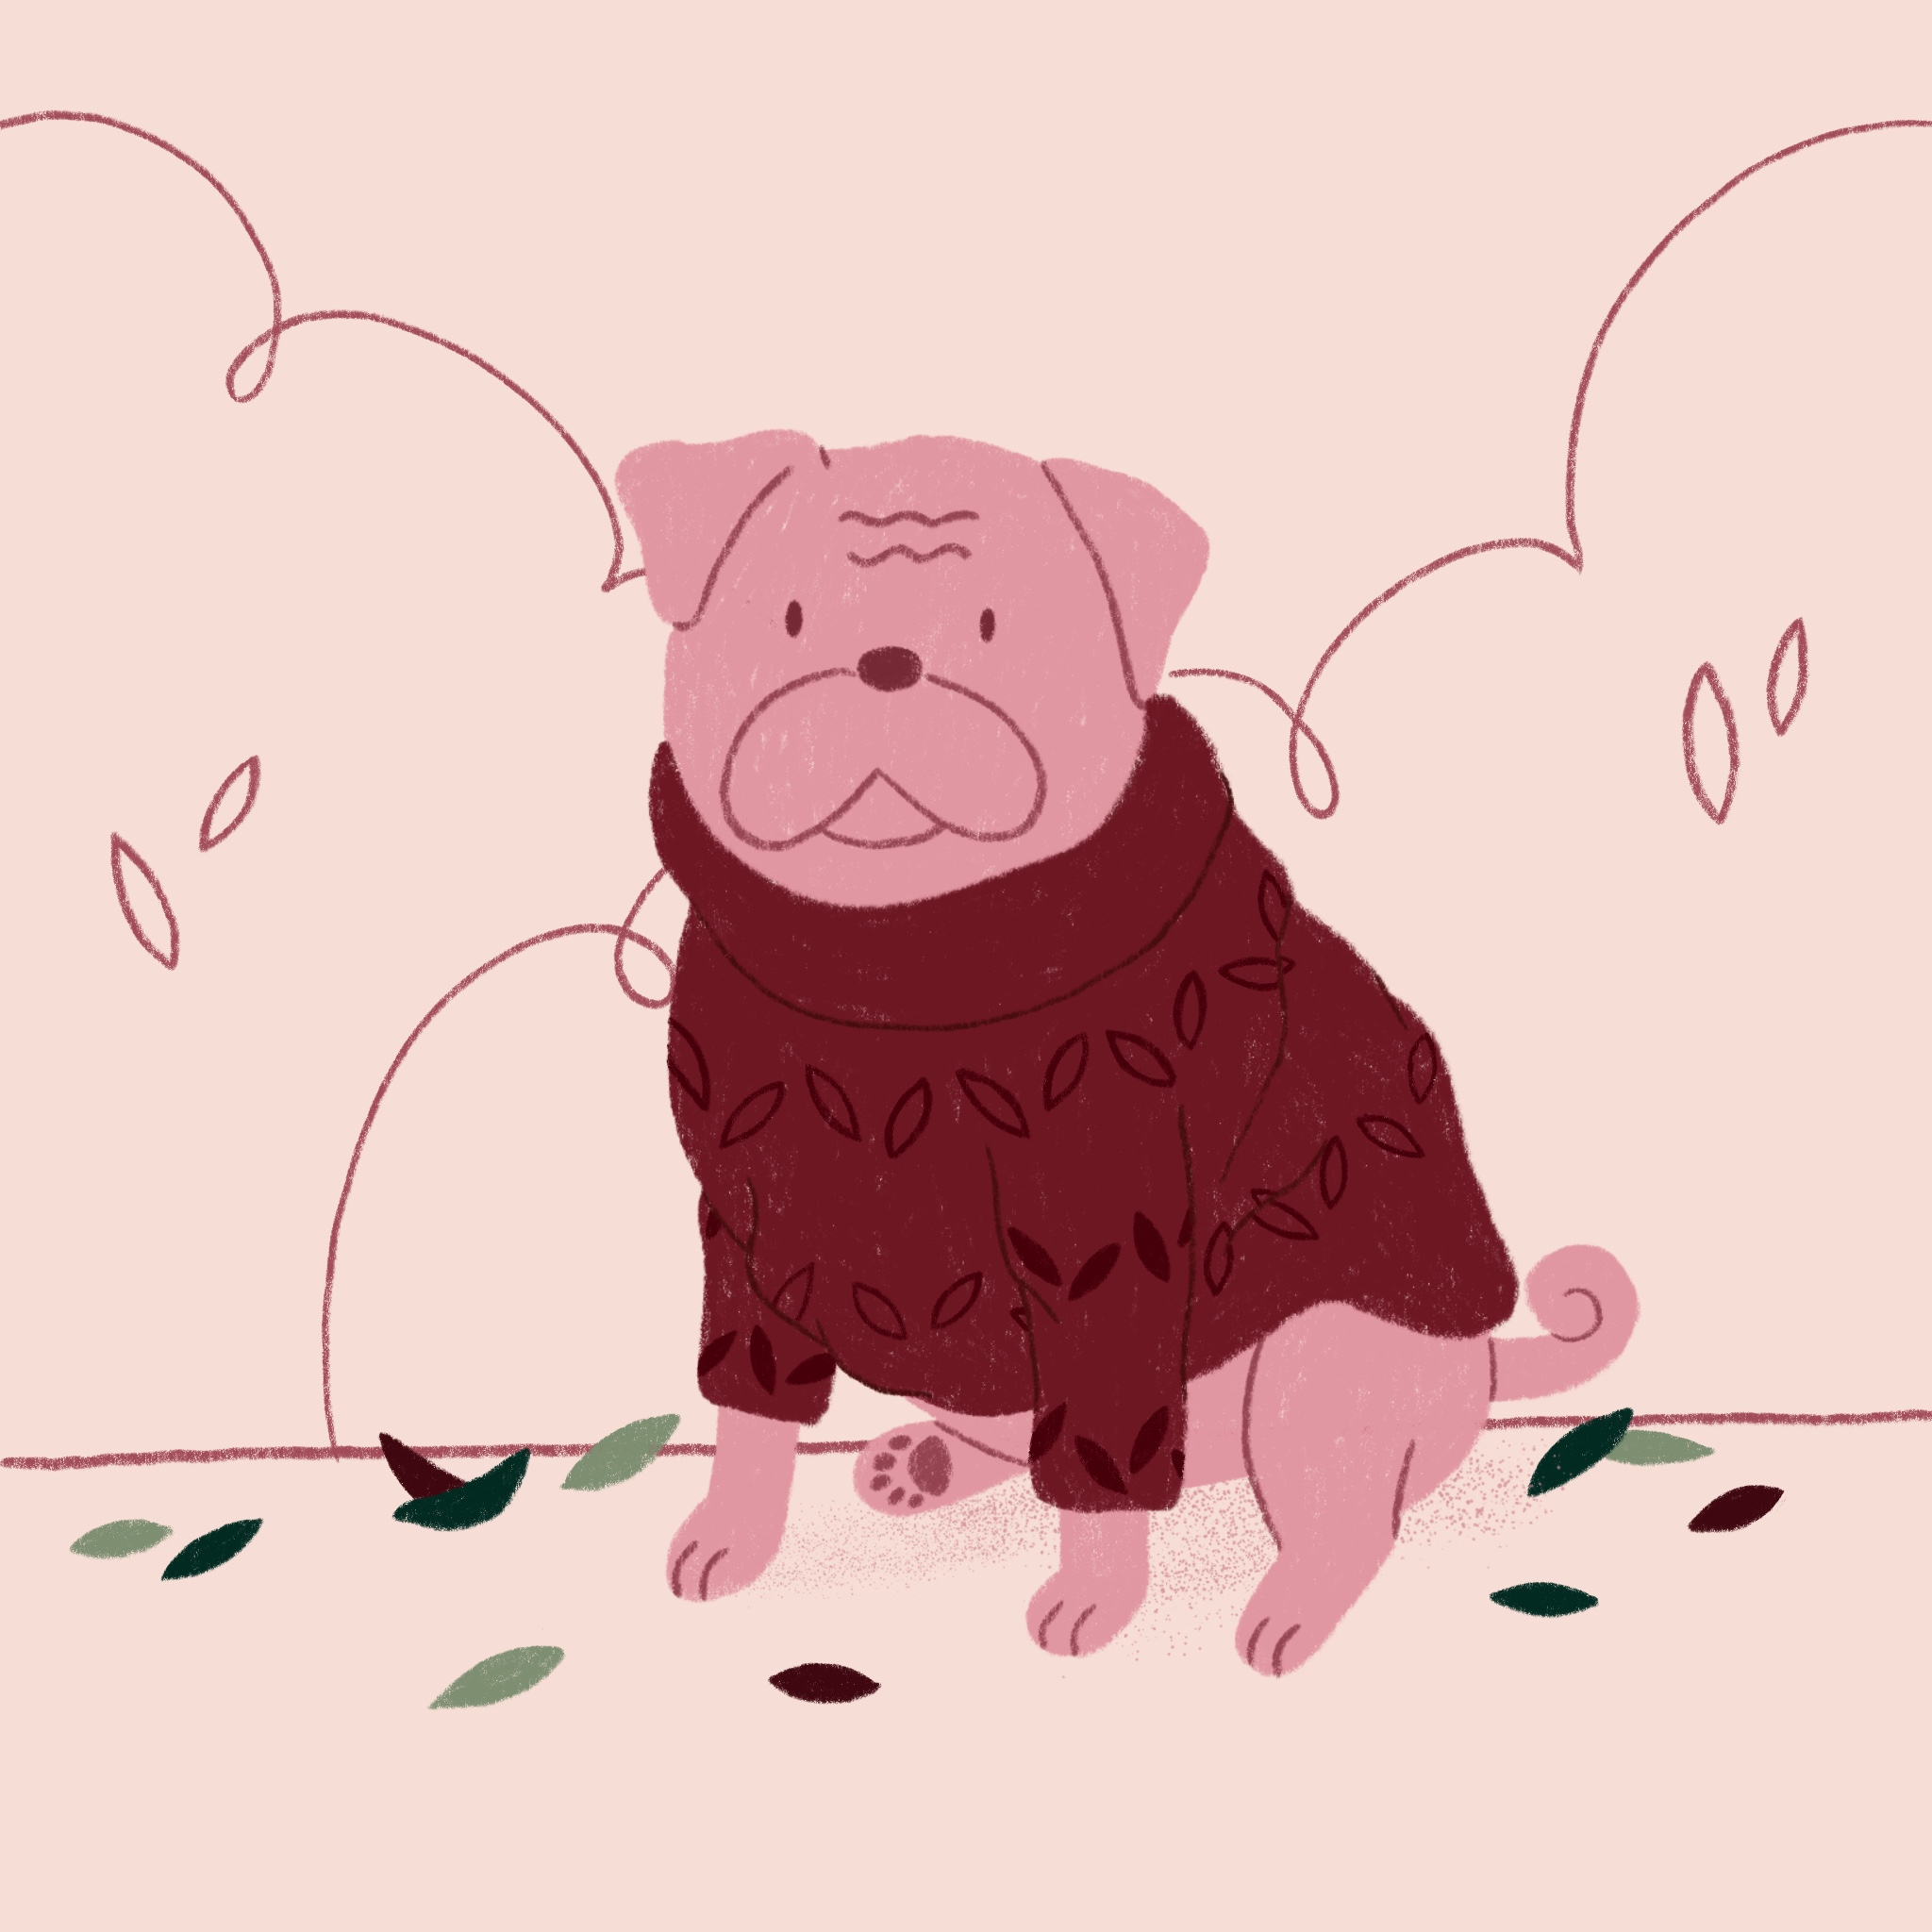 An illustration of a pug wearing a sweater